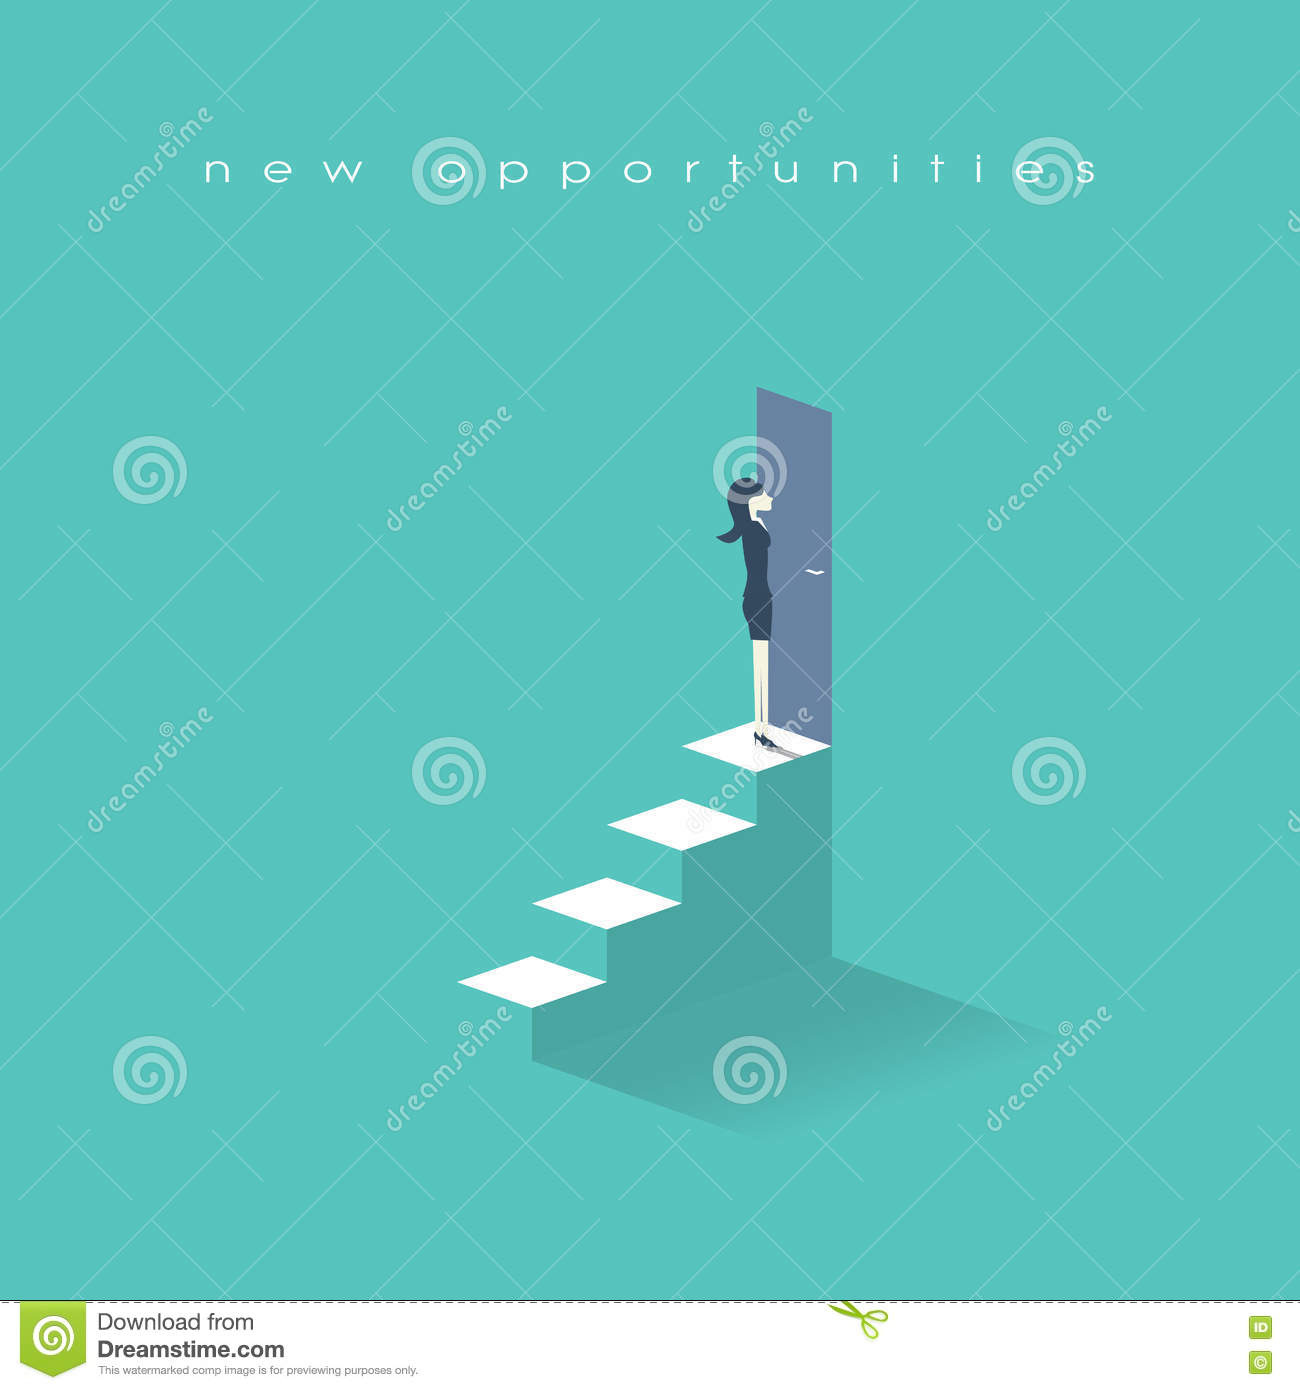 businessw standing in front of opportunity doors royalty businessw standing on top of stairs in front doors business symbol new opportunities and